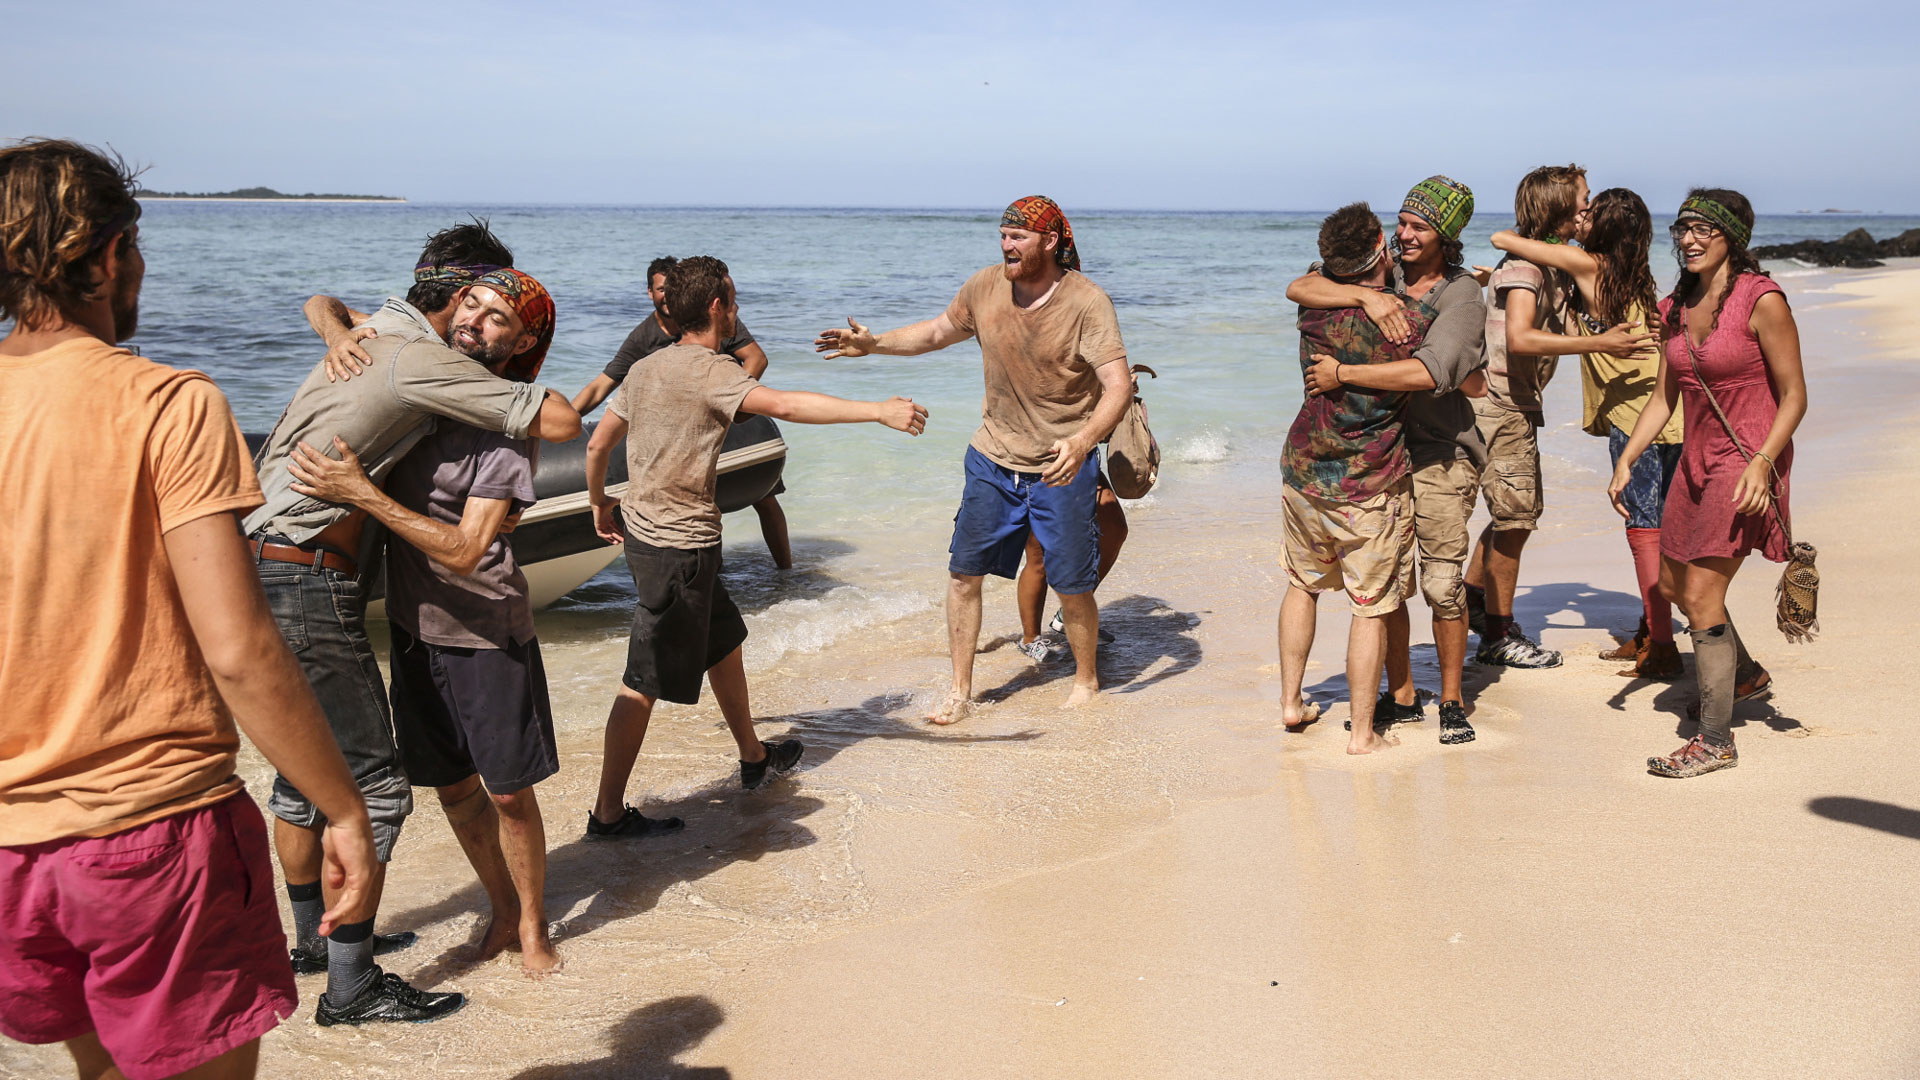 Adam and Chris go in for a hug while their fellow castaways do the same.